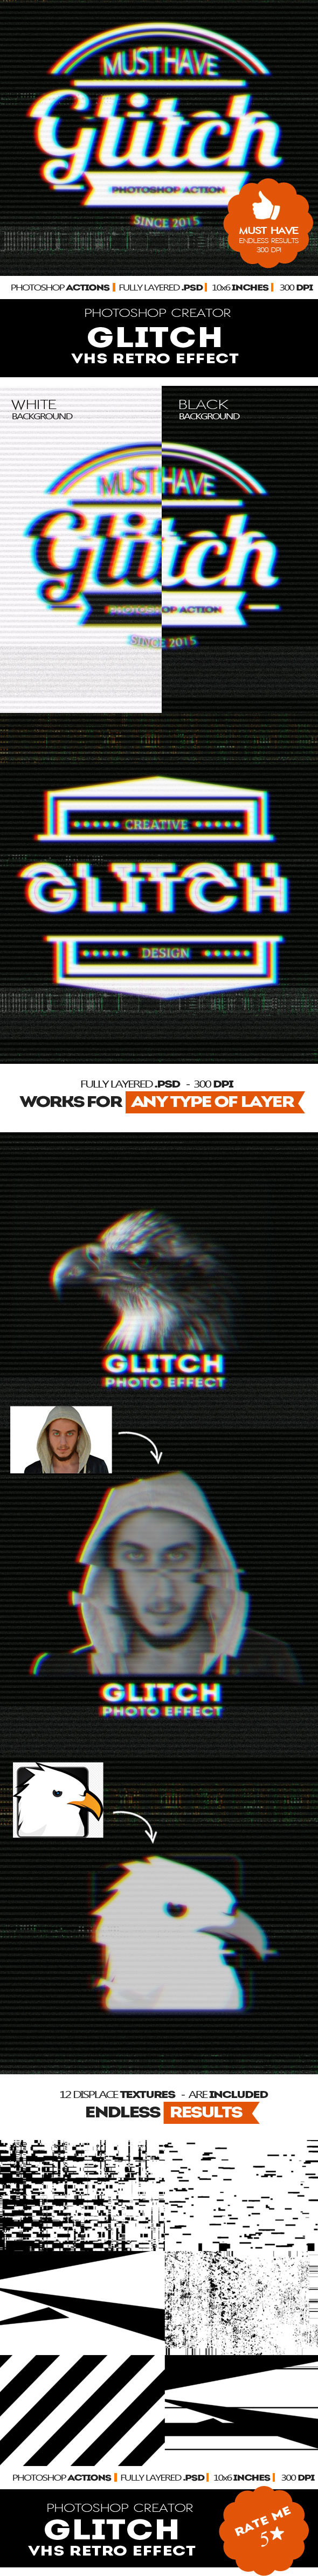 GraphicRiver Glitch VHS Corrupt Image Effect Photoshop Actions 11939518